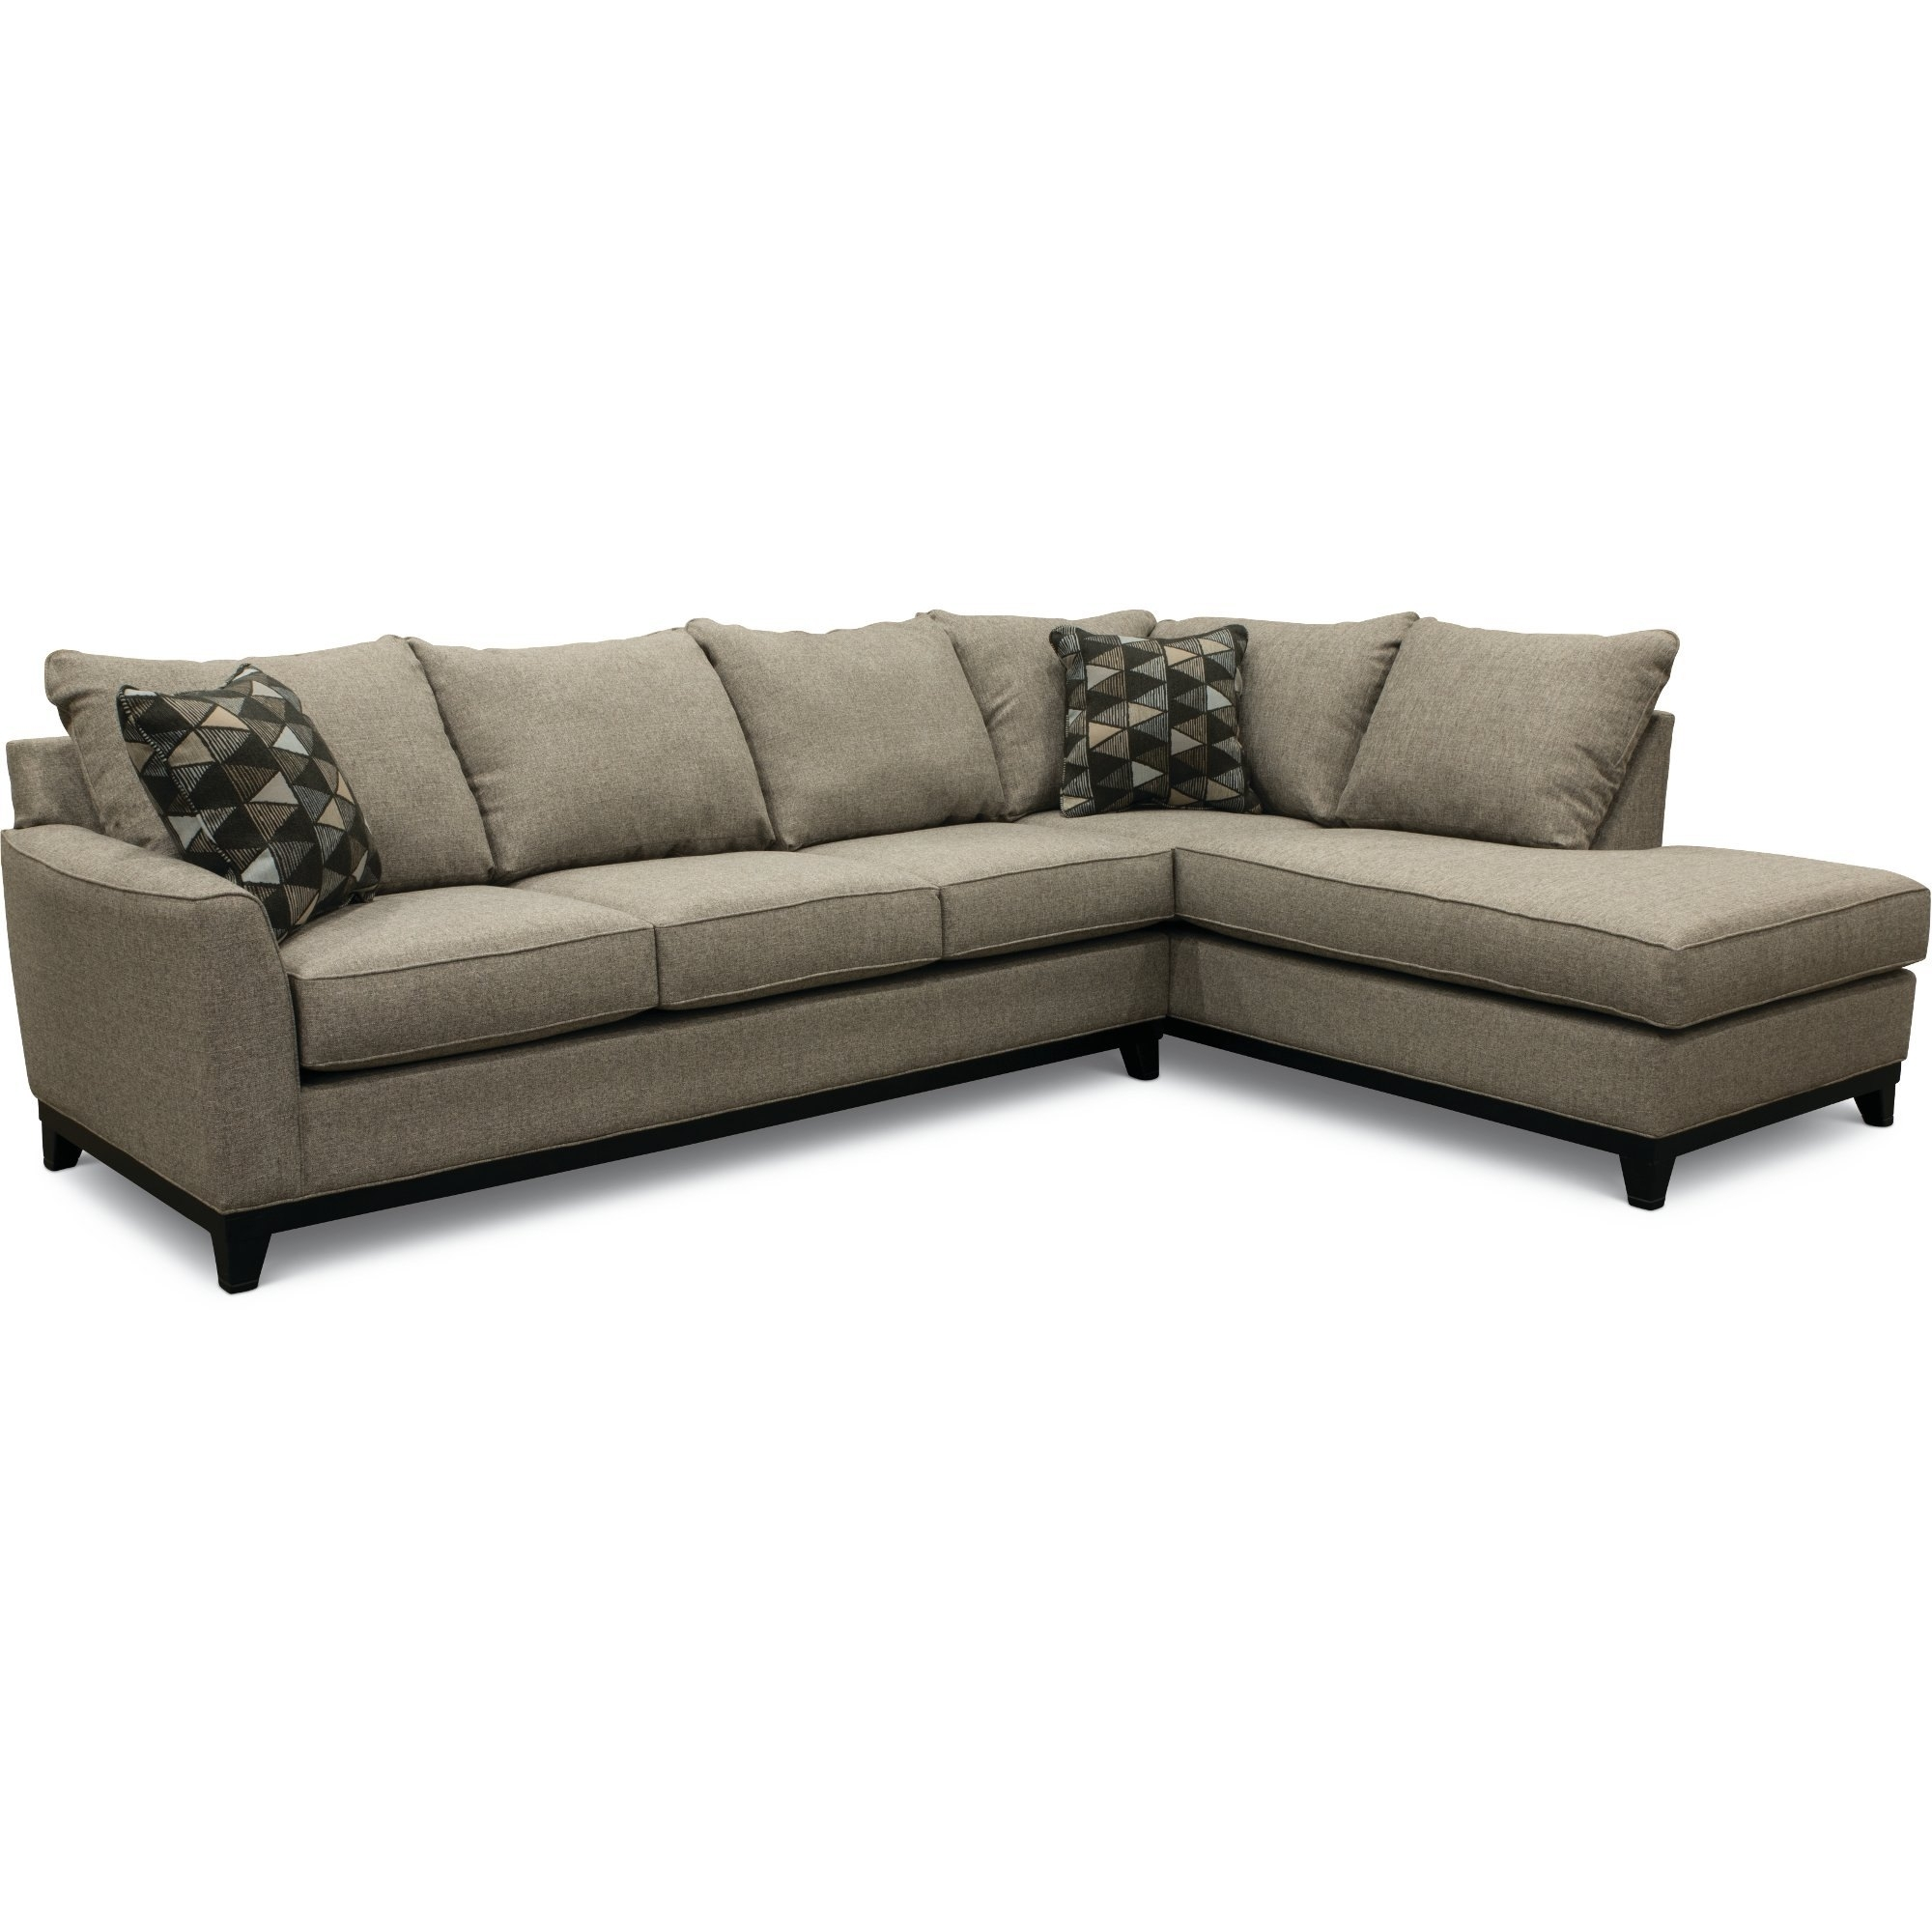 Sofa Sectional | Nokomis Charcoal Laf Sectional Inside Aquarius Light Grey 2 Piece Sectionals With Laf Chaise (View 18 of 25)